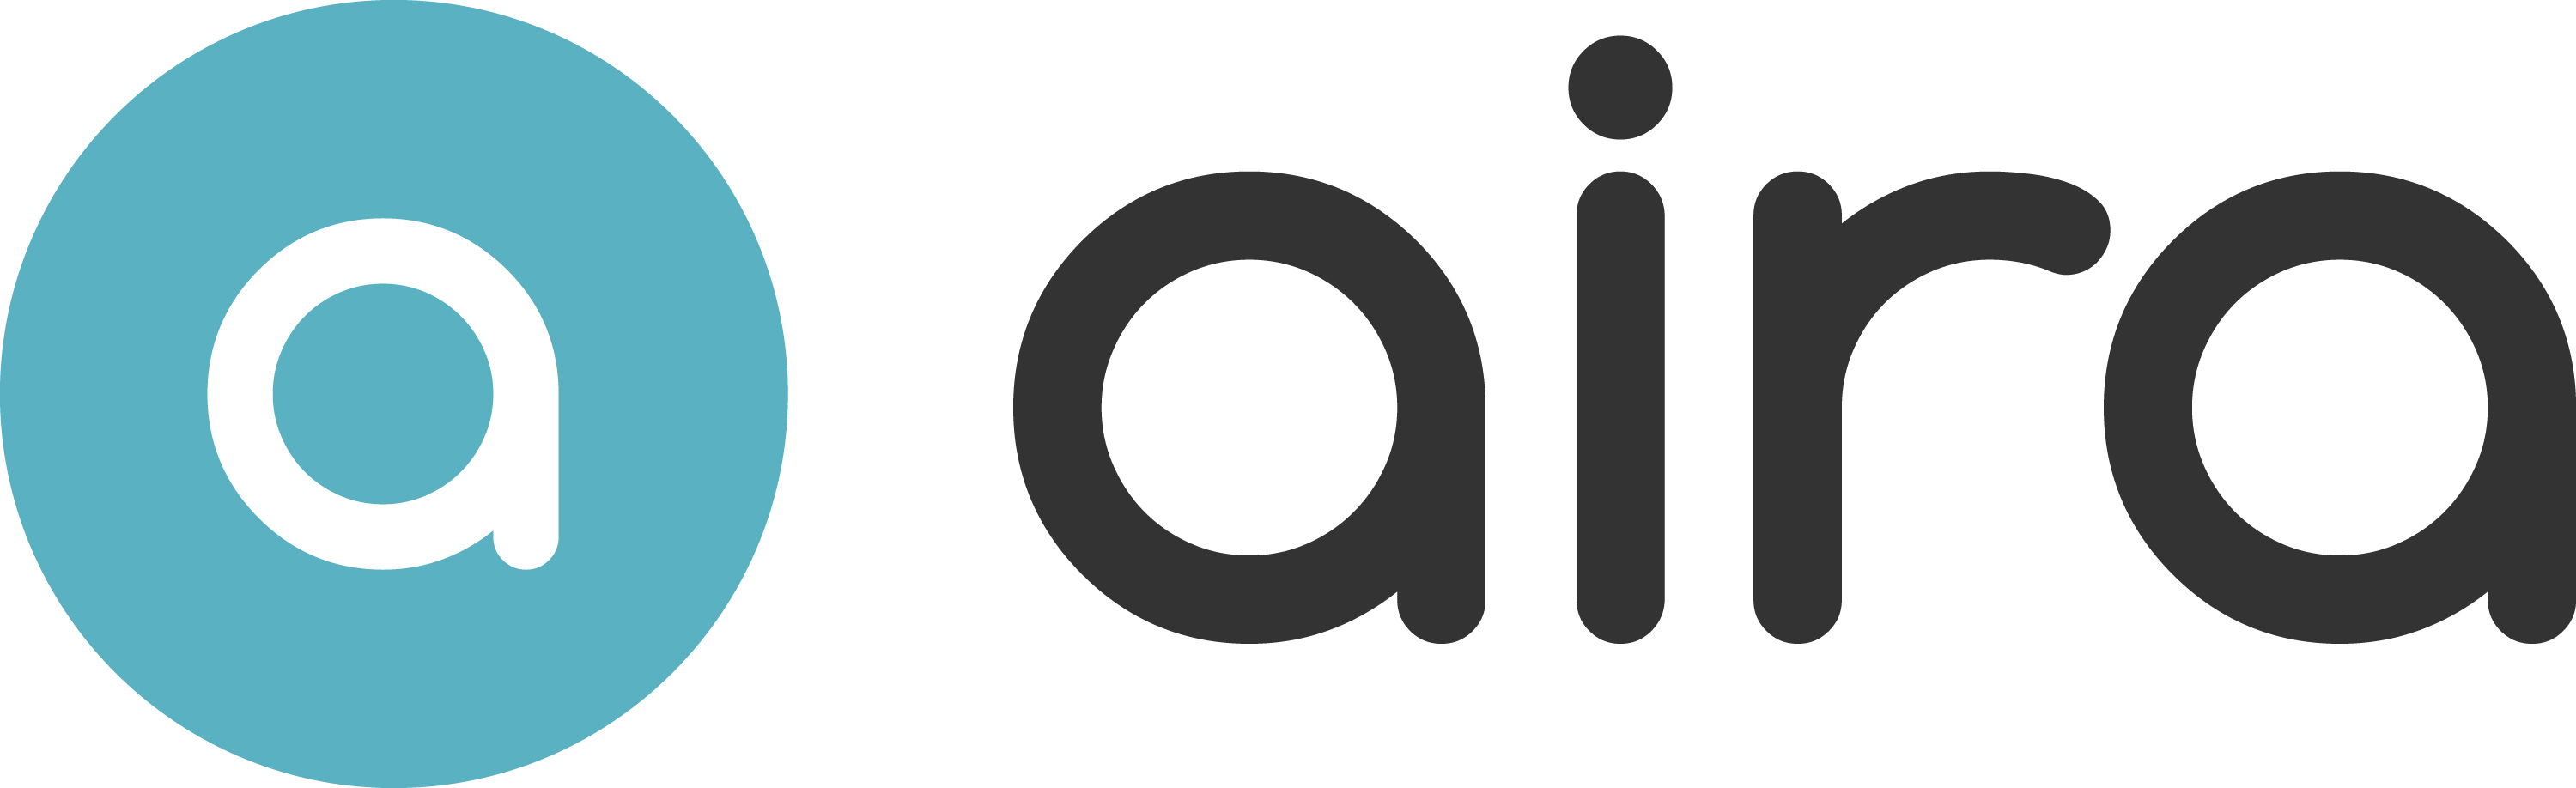 aira visual interpreter for the blind